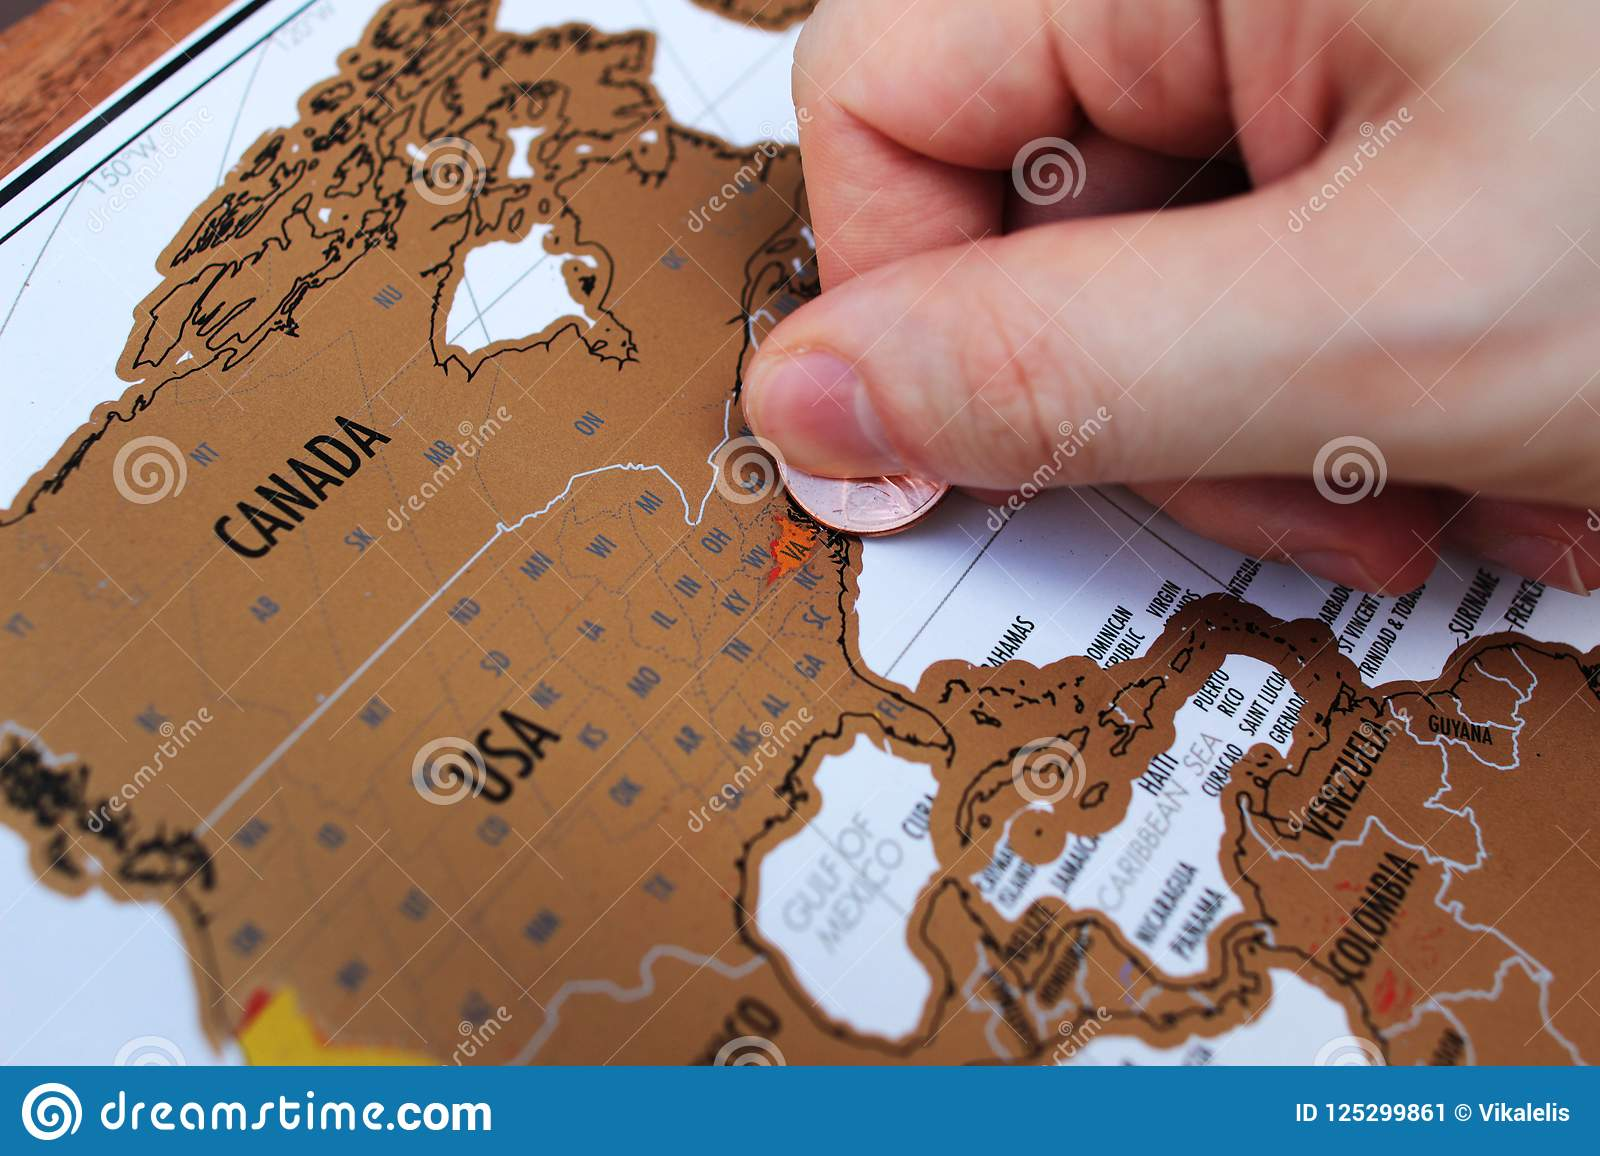 We see them every day, we use them when we travel, and we refer to them often, but what is a map? Man S Hand Scratching Off Visited Places On A Map Stock Image Image Of Trip Tourist 125299861